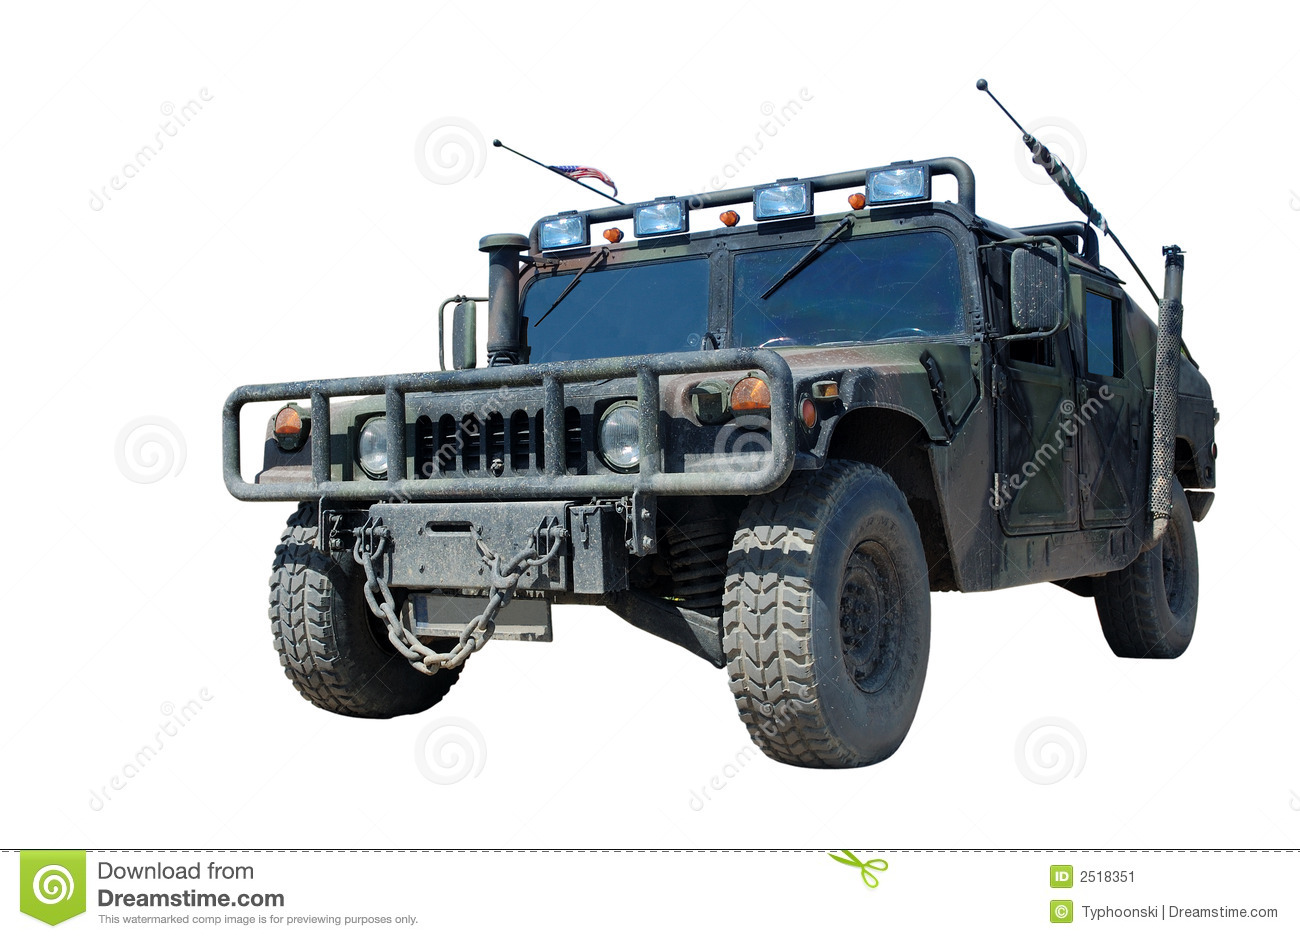 US Military Truck Hummer H1 Stock Image - Image: 2518351